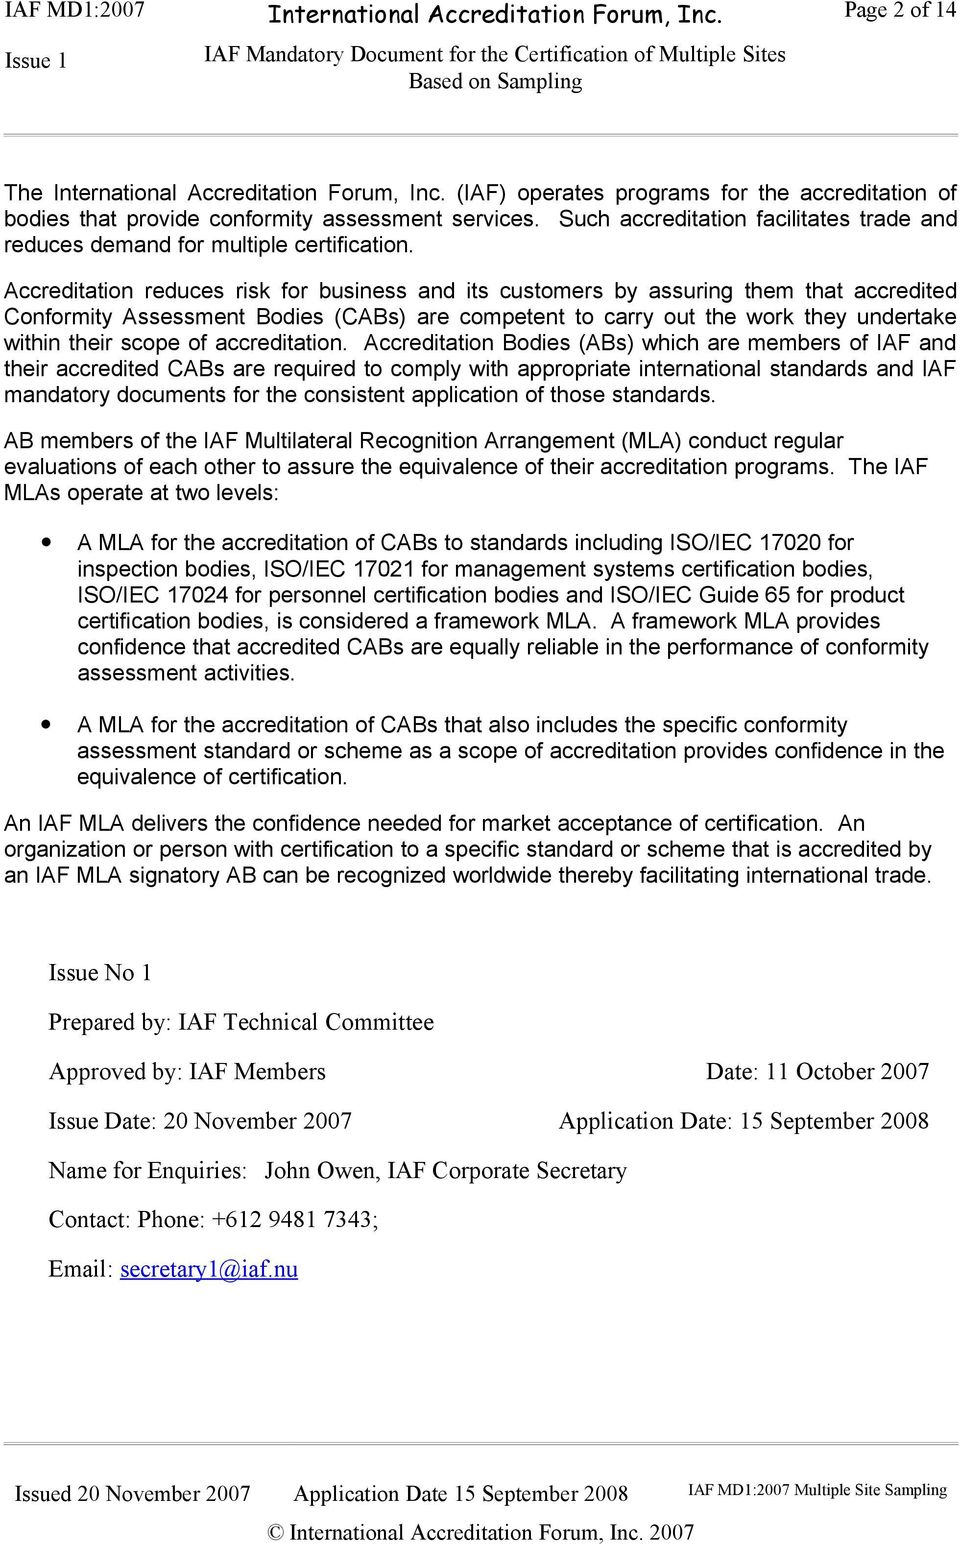 IAF Mandatory Document for the Certification of Multiple ...